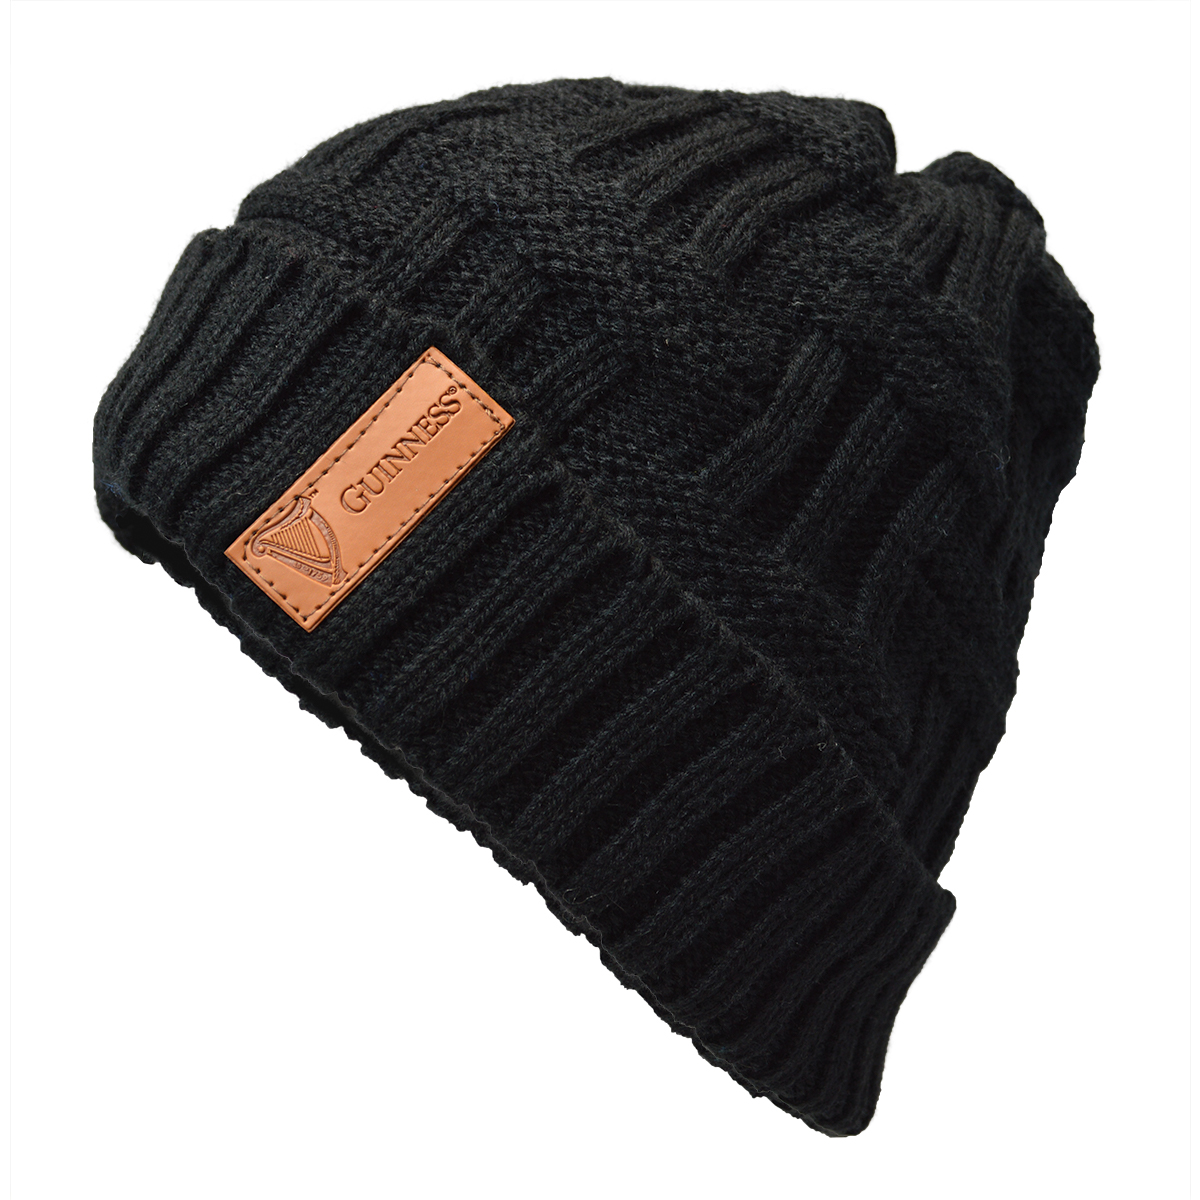 irish hats guinness black beanie with leather patch at irishshop com gfja10226 irish hats guinness black beanie with leather patch